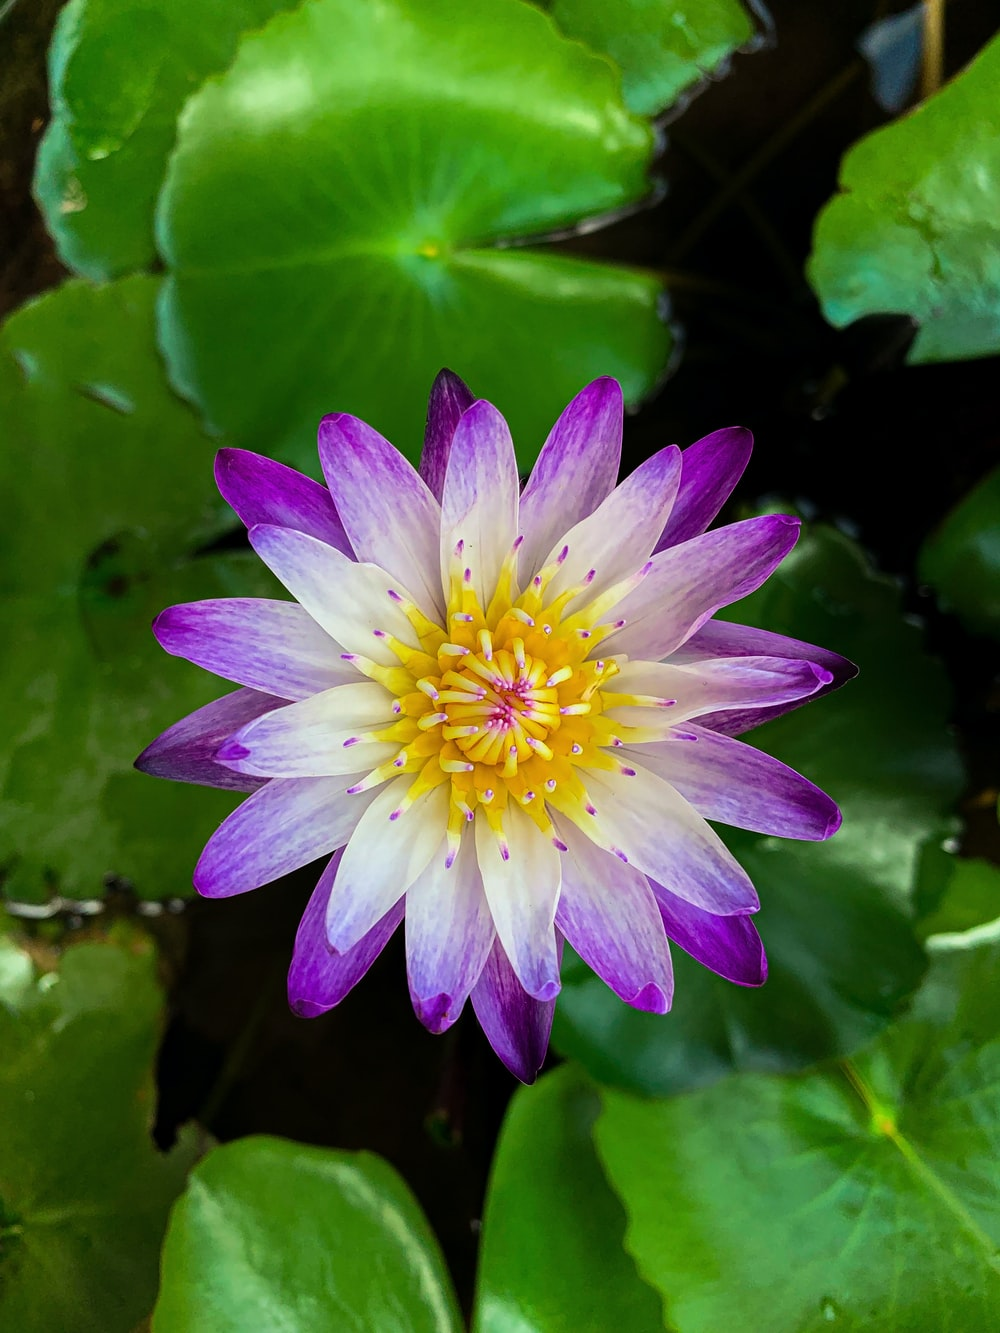 purple waterlily in bloom during daytime